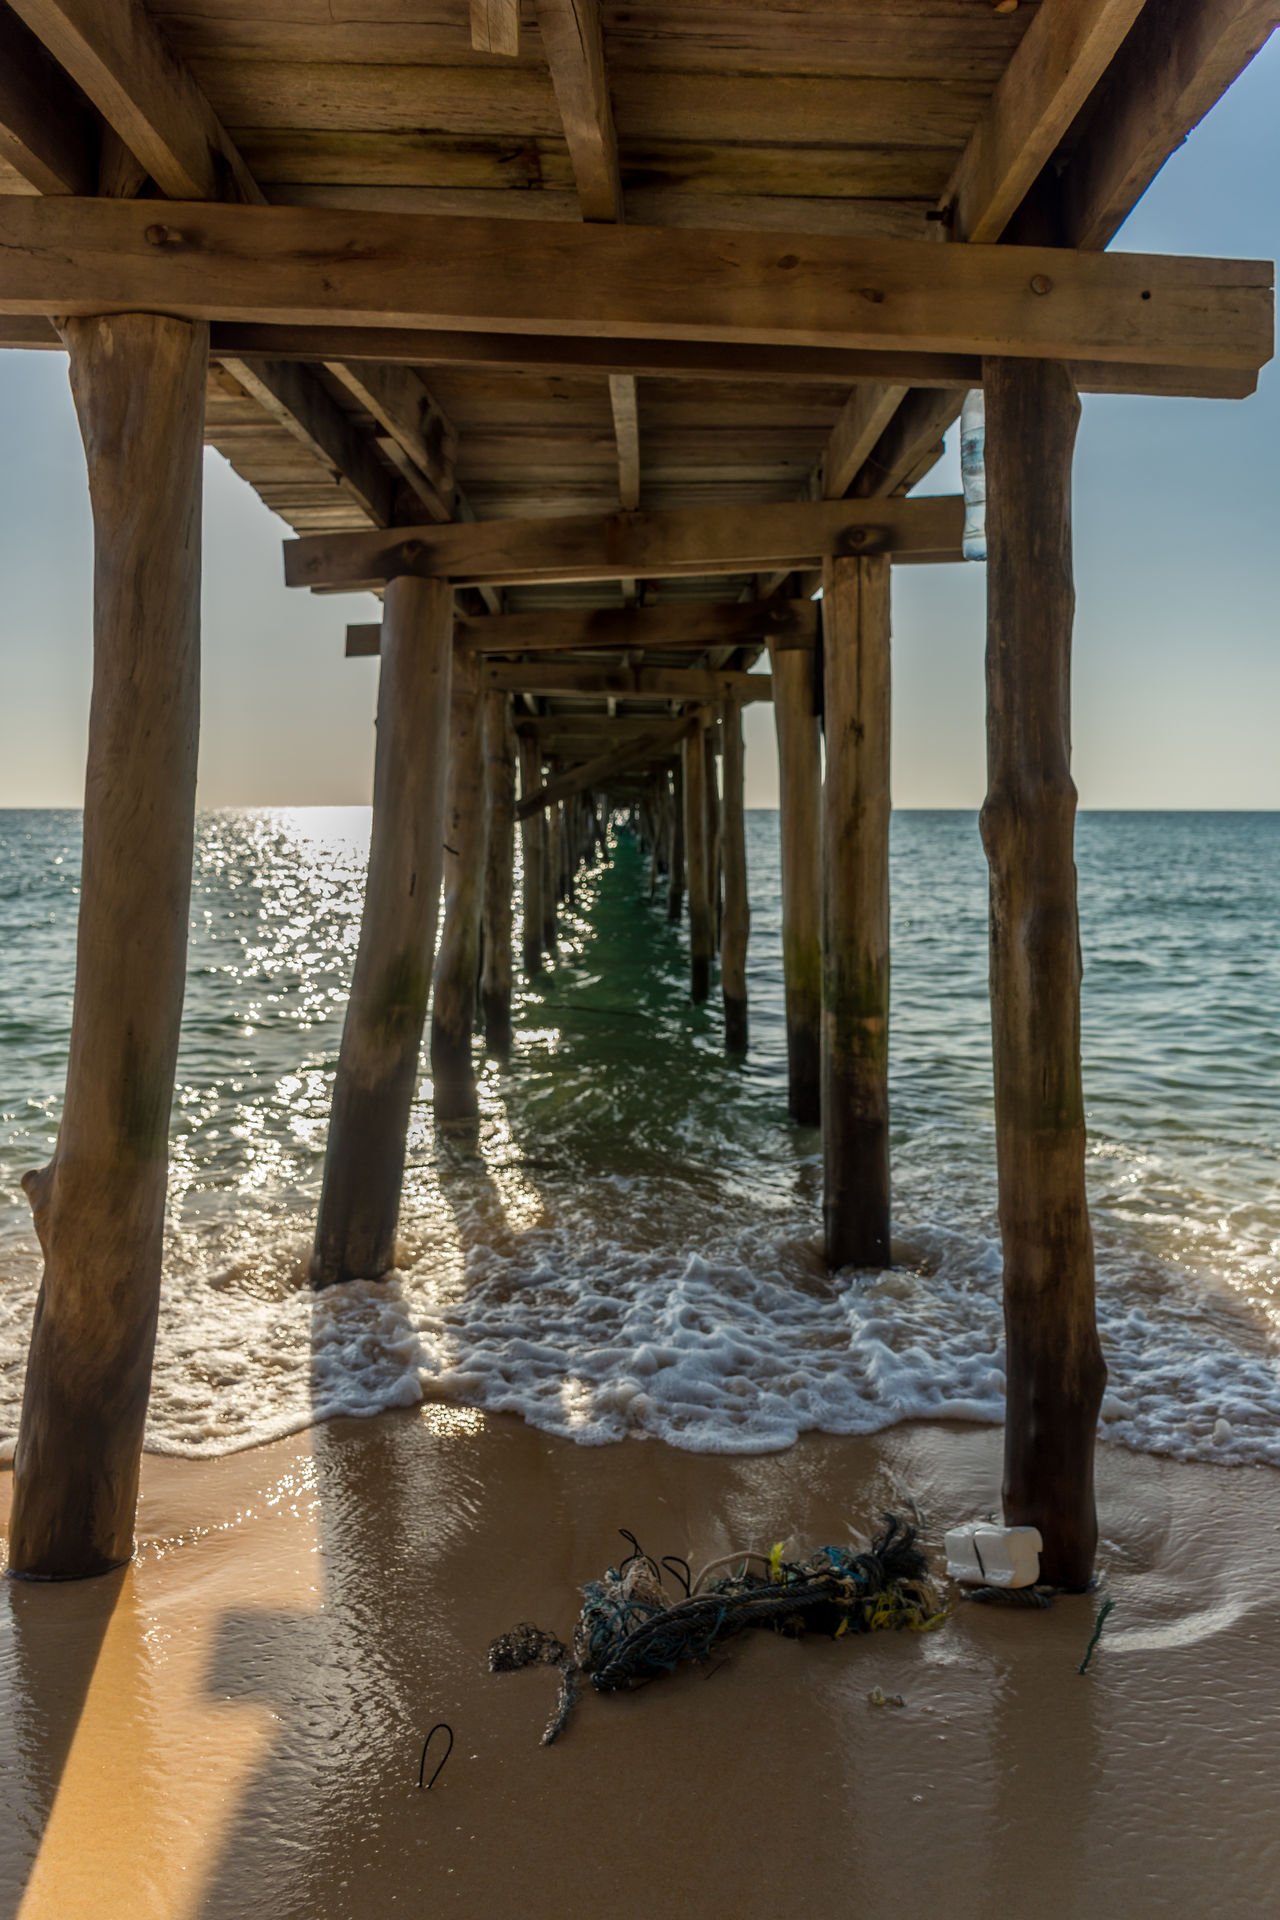 View under a old wooden jetty going out to sea from a golden sand beach. Beach Calm Cambodia Golden Horizon Horizon Over Water Island Jetty Ocean Old Outdoors Pier Posts Rubbish Sand Sea Sun Tide Waves Wood Wooden